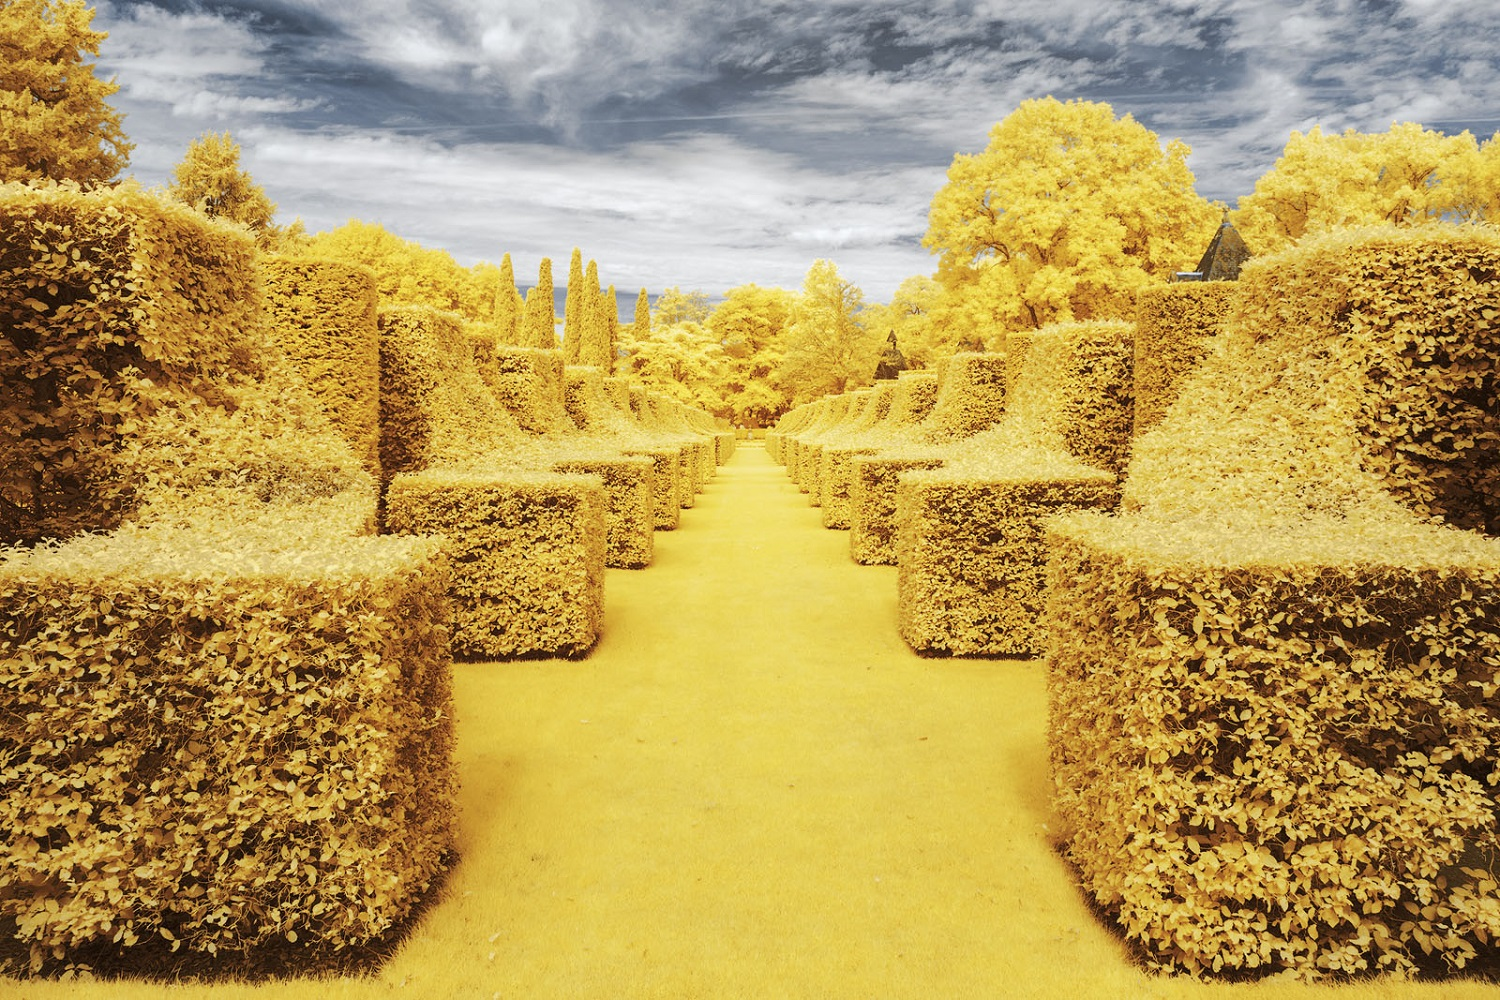 Infrared Photographs by Pierre-Louis Ferrer Capture French Landscapes in Bright Yellow Hues